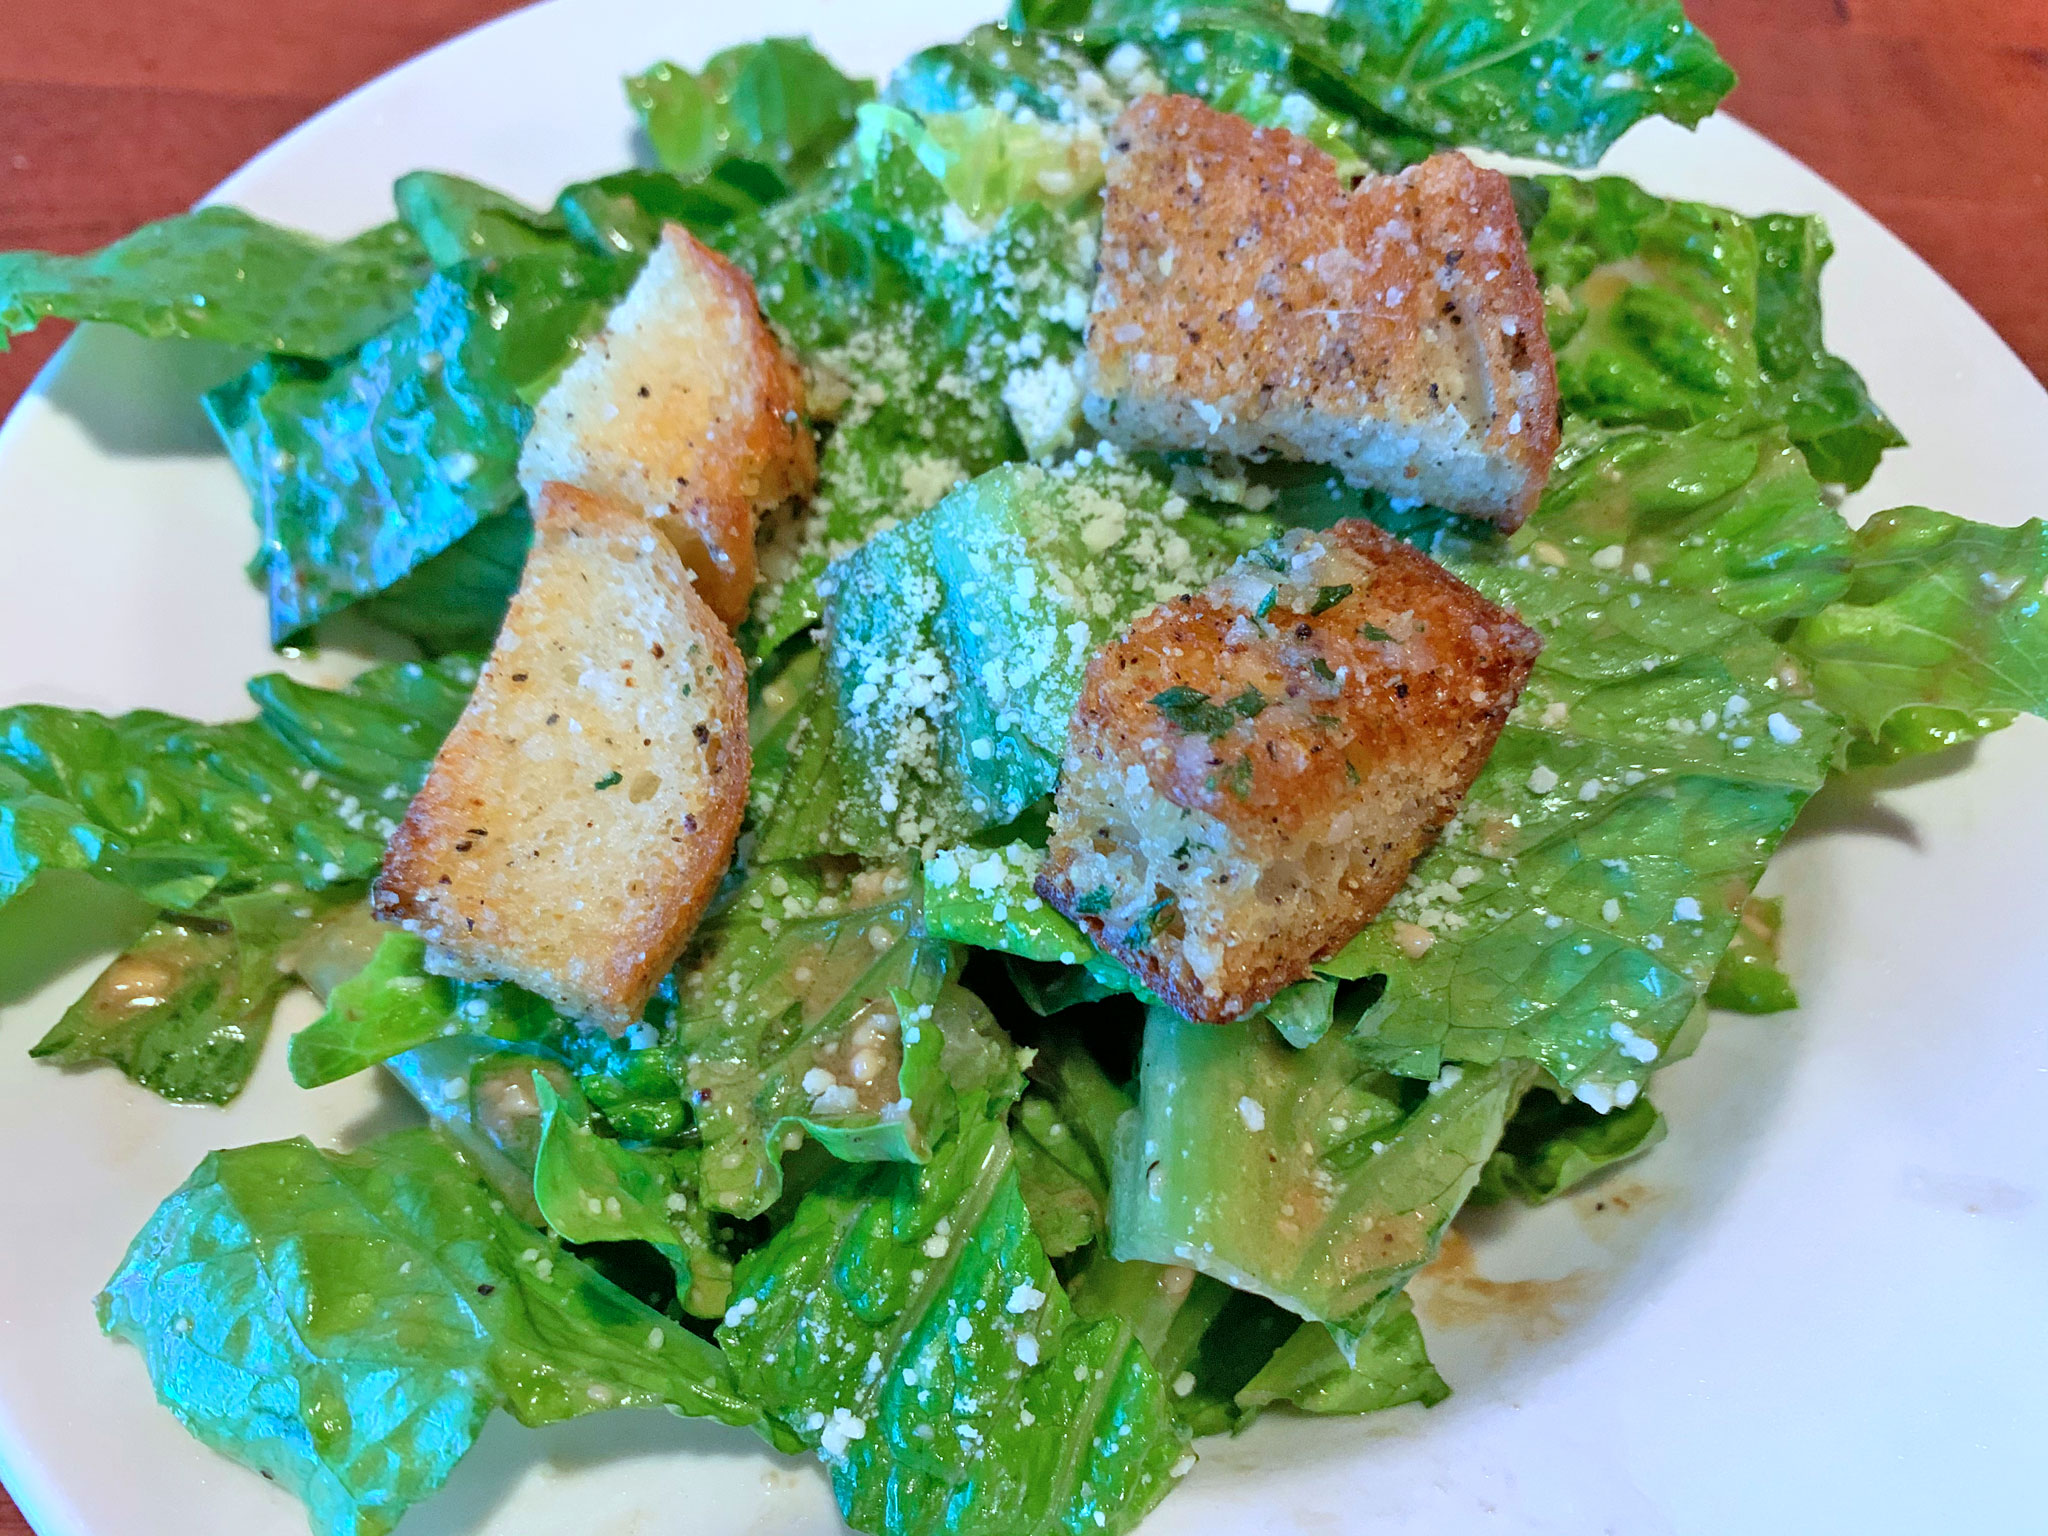 Caesar Salad with Great Homemade Rustic Croutons